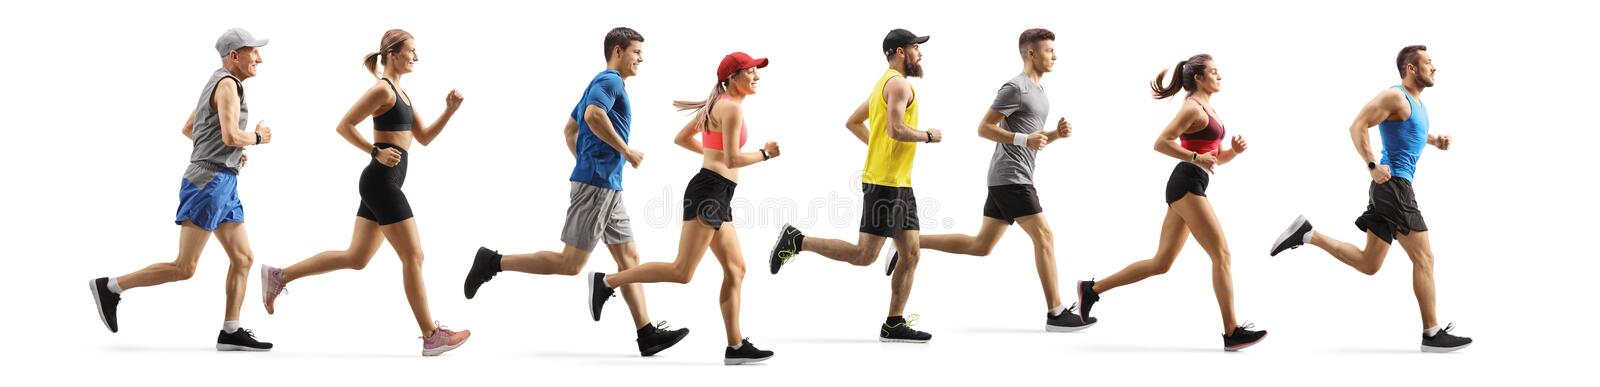 Men and women running a marathon royalty free stock photo